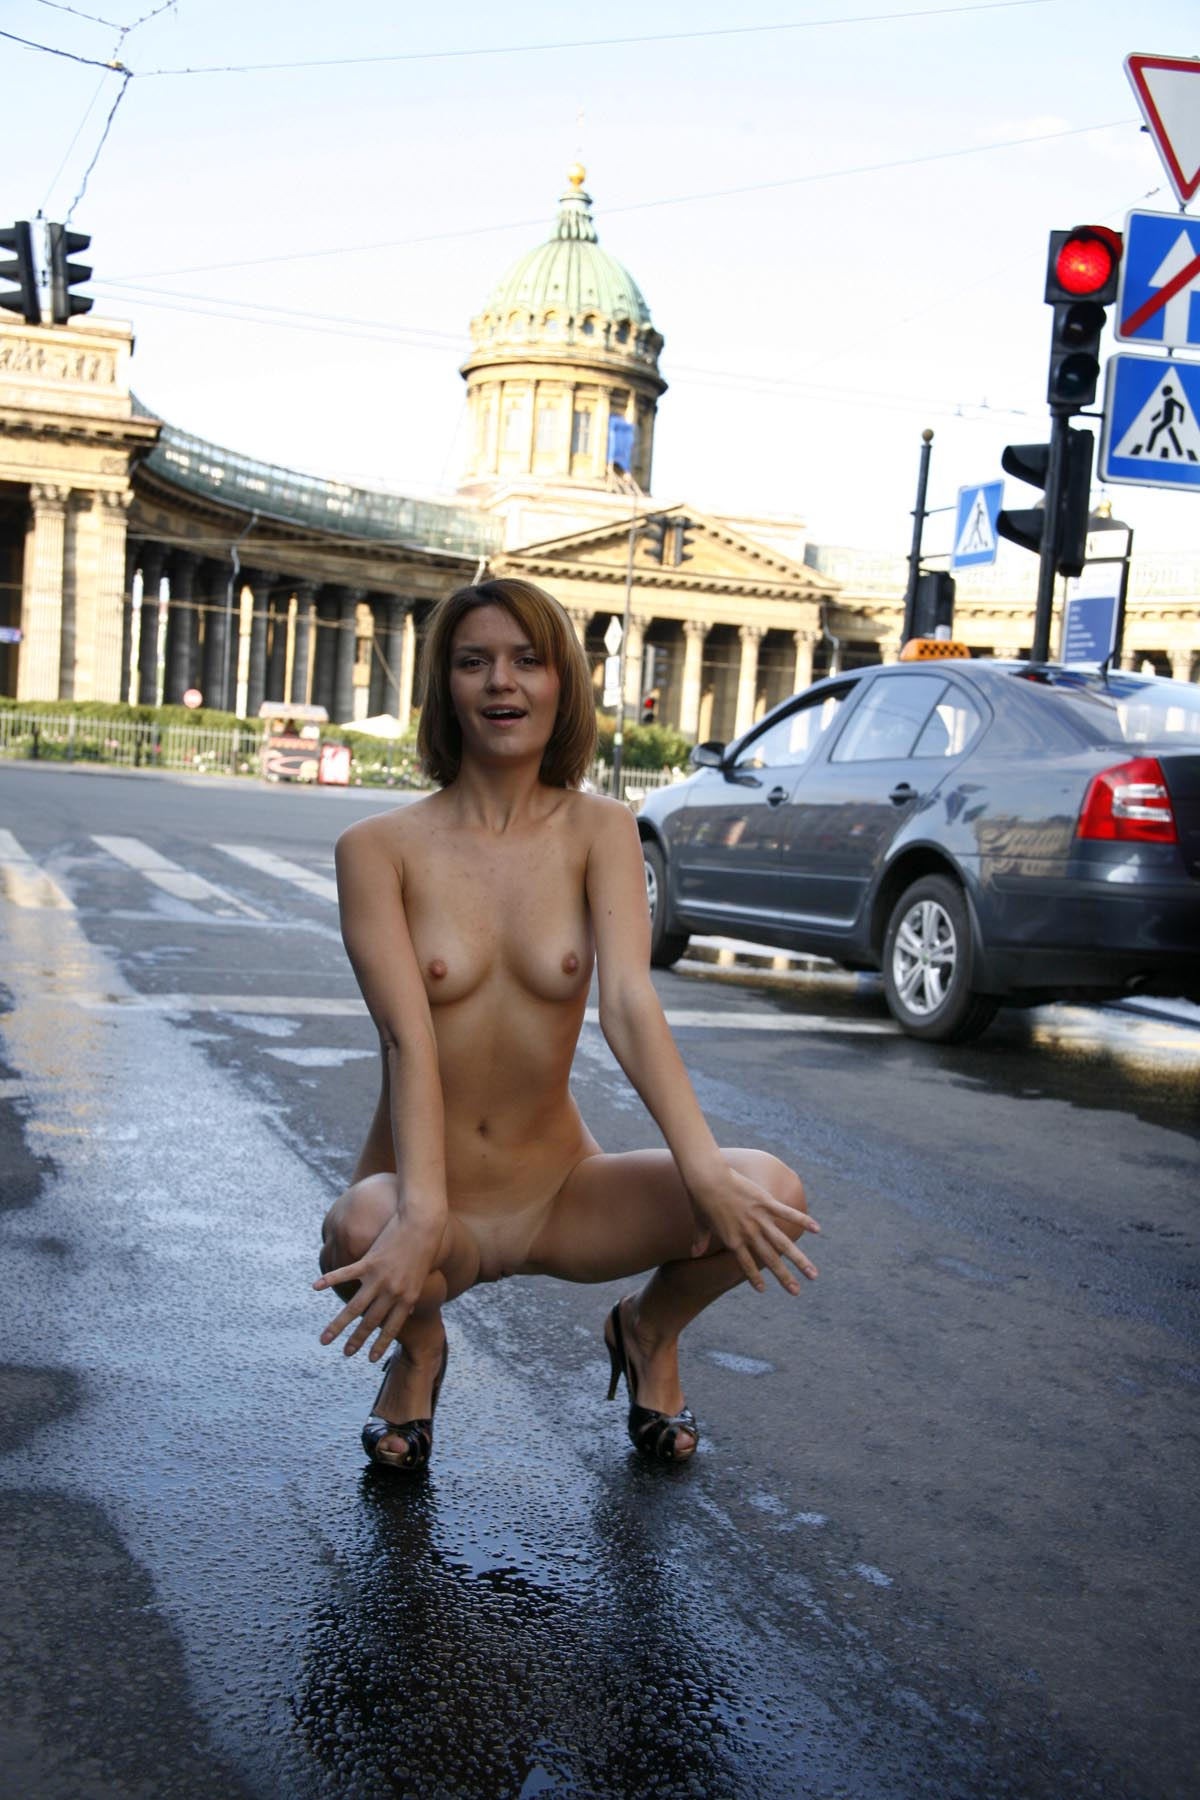 Shameless girl shows her naked body on the streets ...